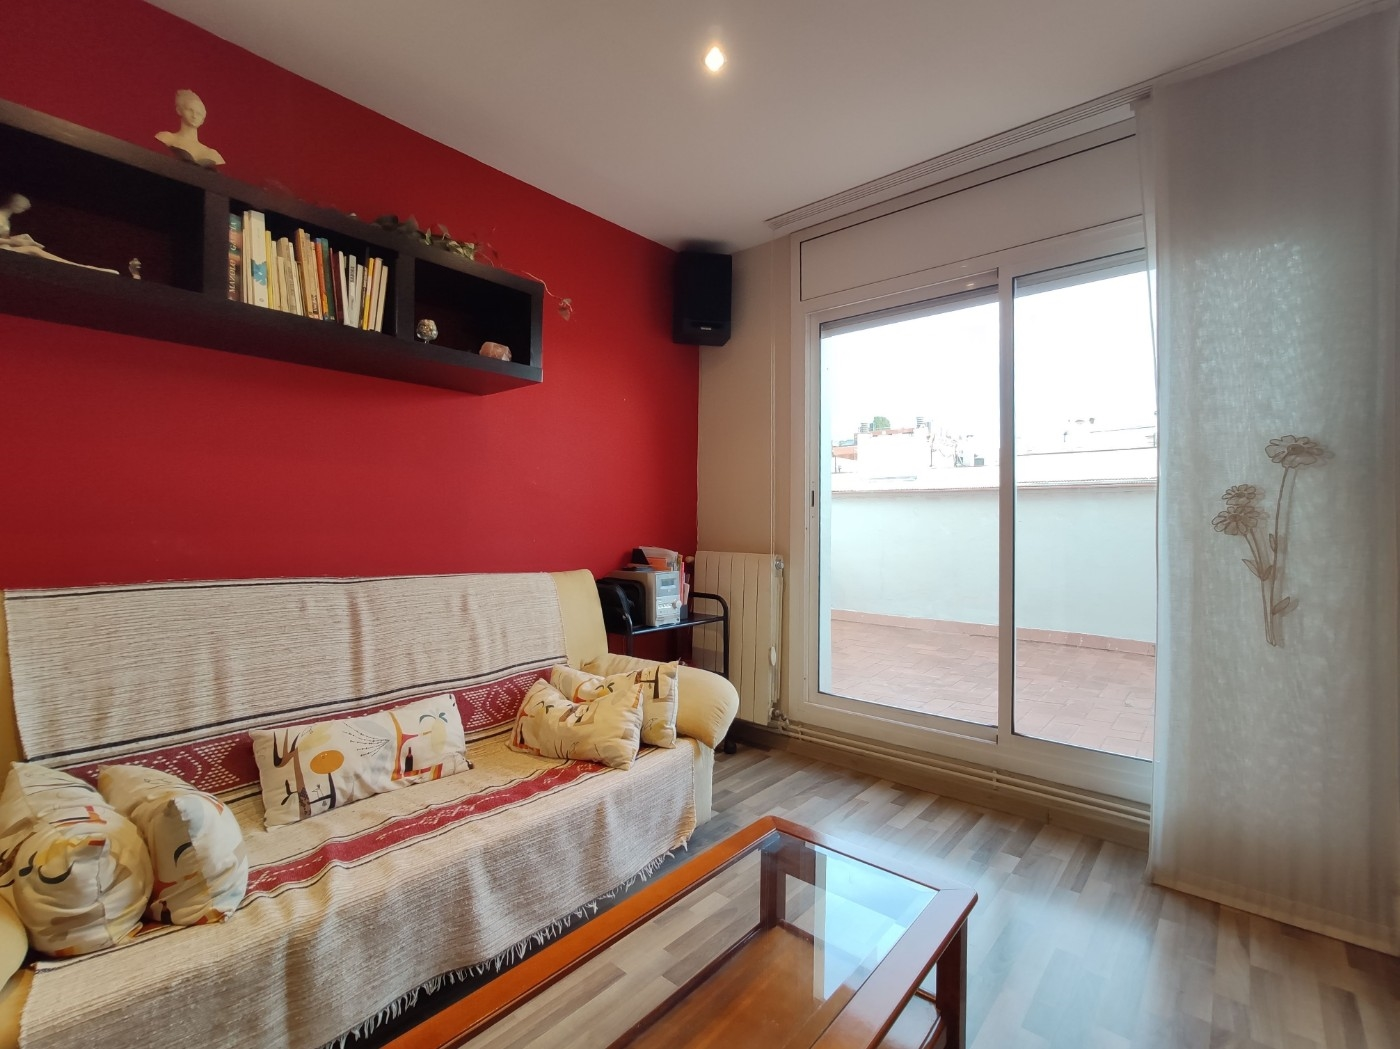 Apartment in Barcelona - eixample. Terrace.2 bedrooms. For sale: 385.000 €.